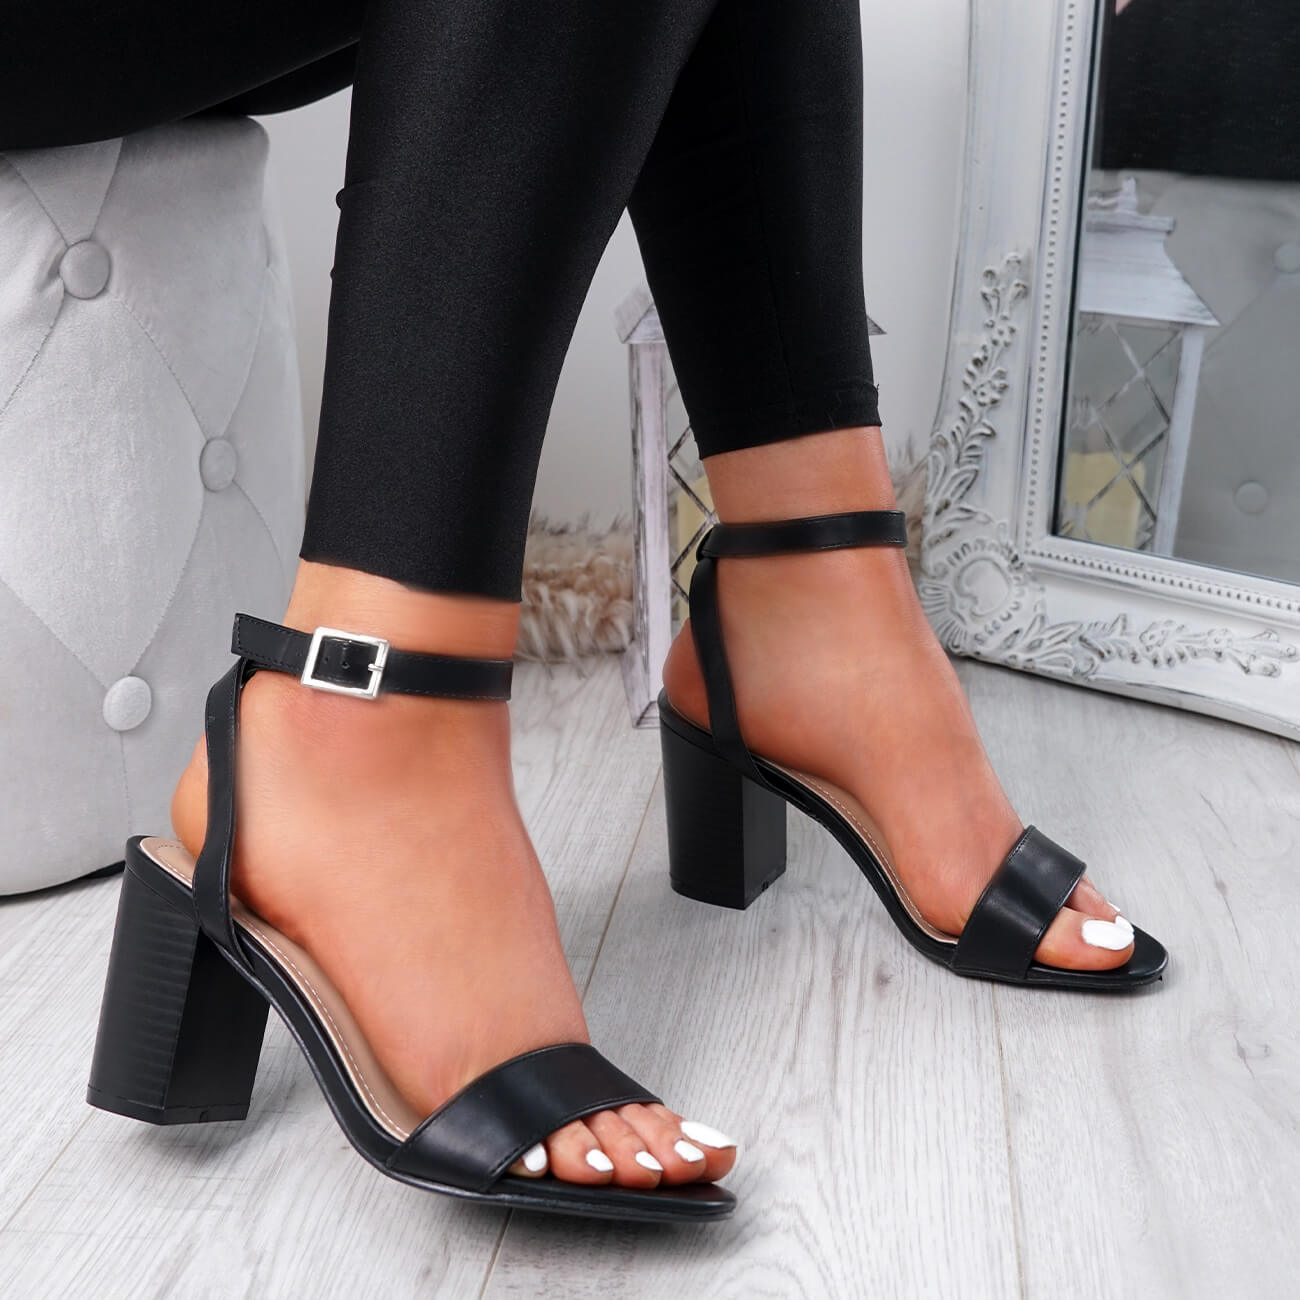 WOMENS-LADIES-PEEP-TOE-HIGH-BLOCK-HEEL-SANDALS-ANKLE-STRAP-PARTY-SHOES-SIZE thumbnail 9